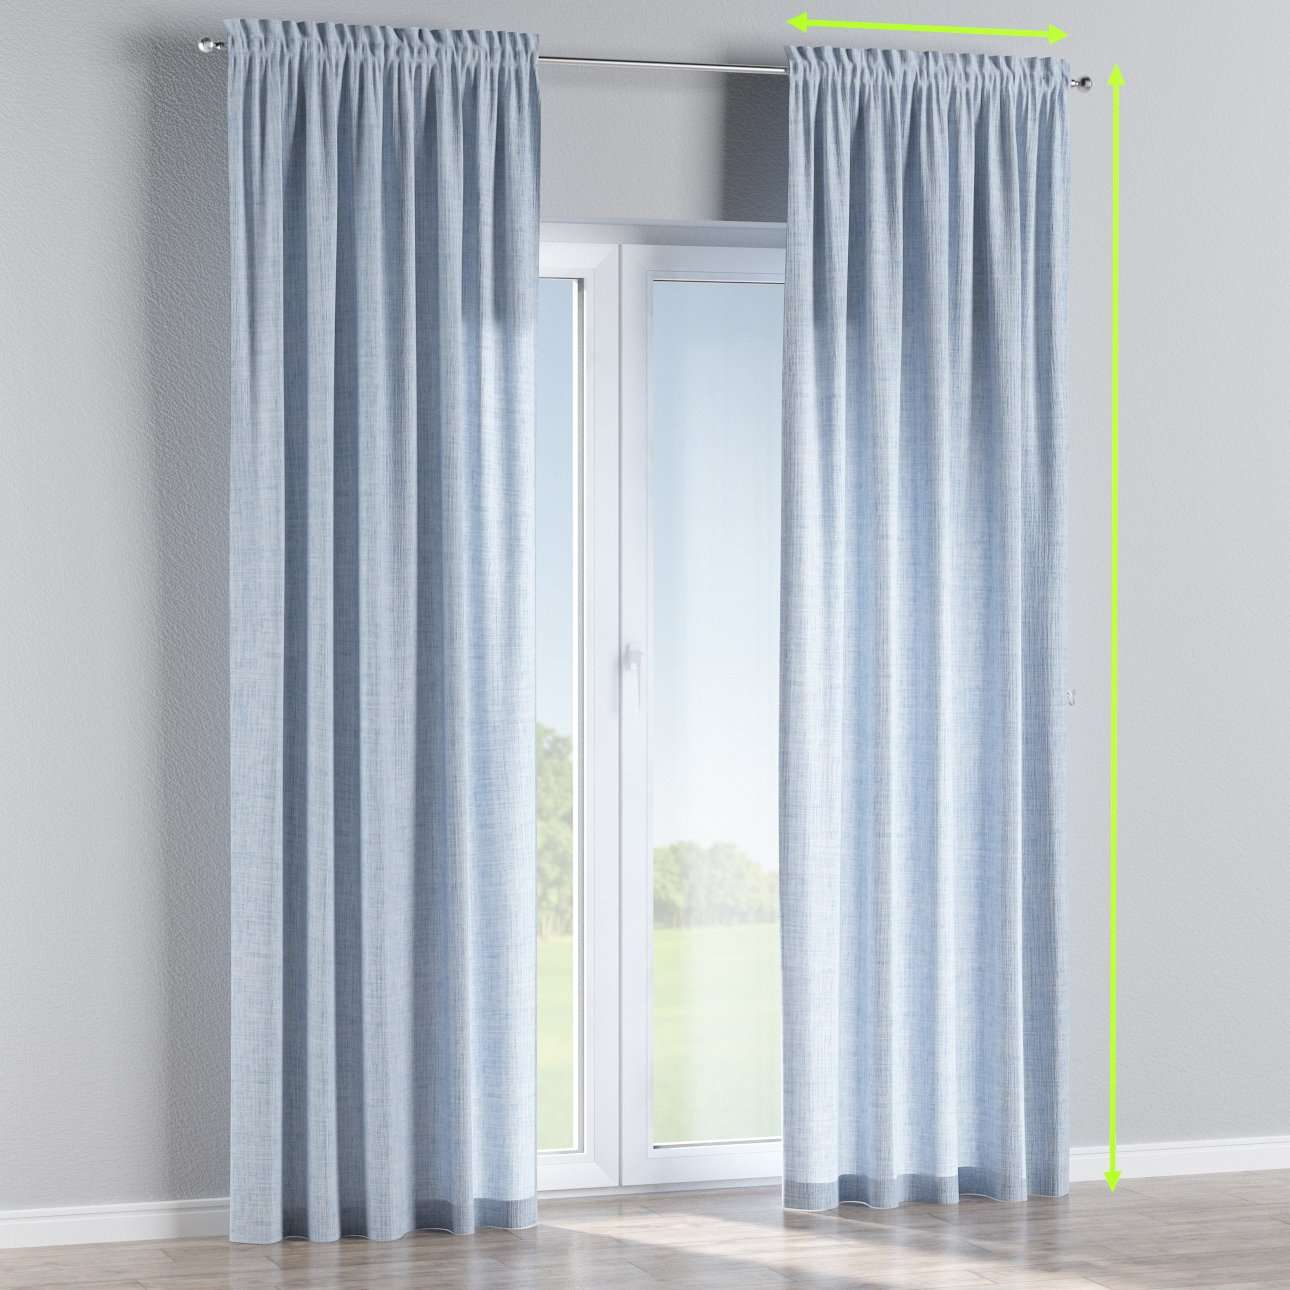 Slot and frill lined curtains in collection Aquarelle, fabric: 140-74